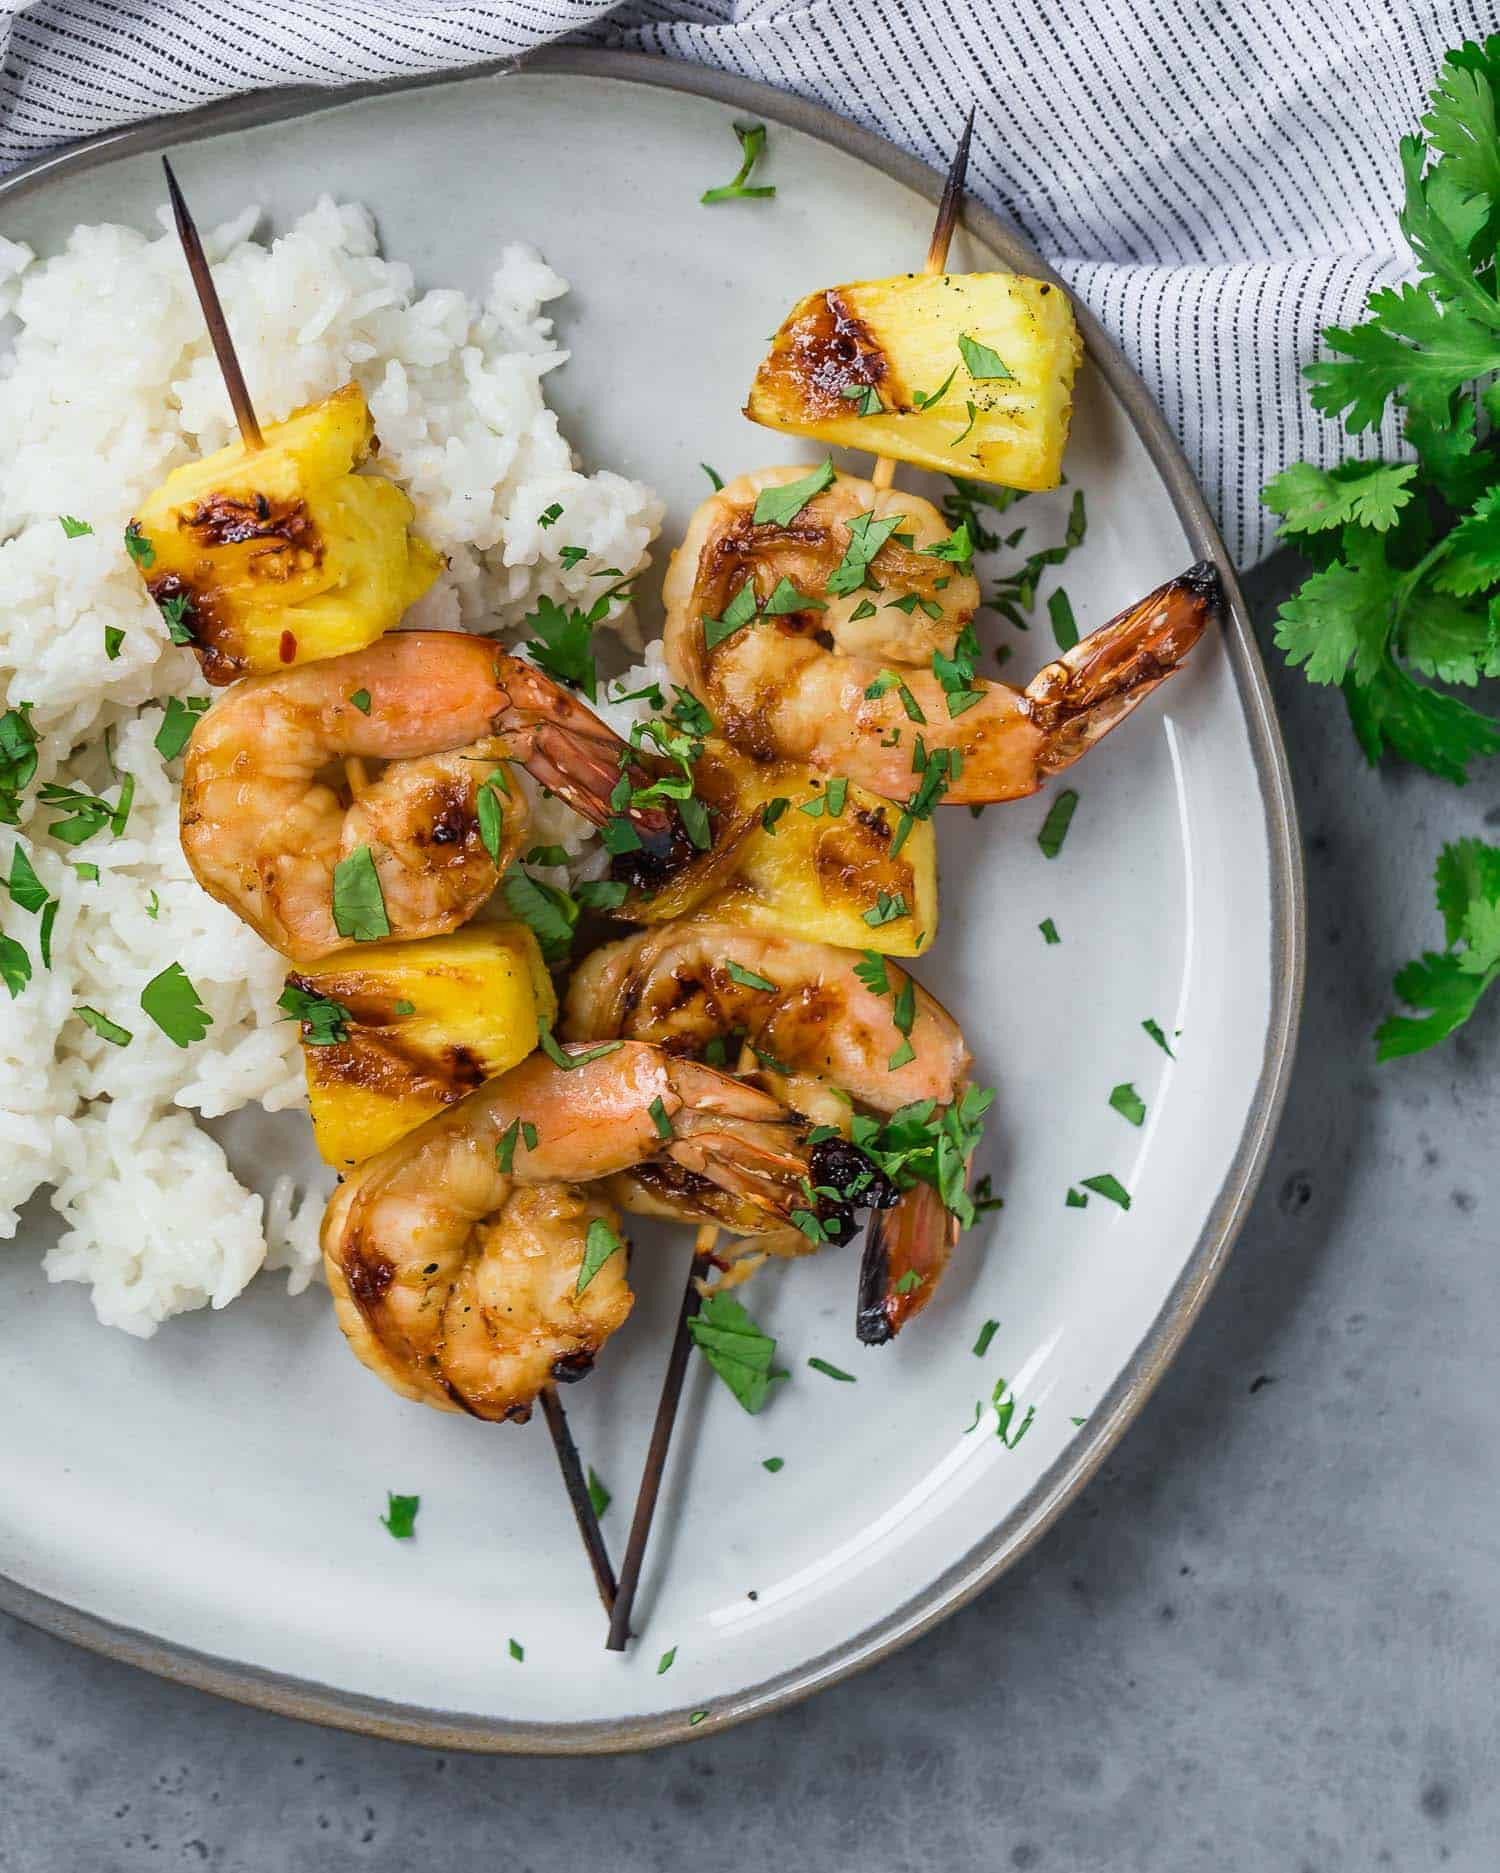 Overhead view of two grilled kabobs on a plate, with shrimp and fresh pineapple. They are served with white rice and sprinkled with fresh cilantro.